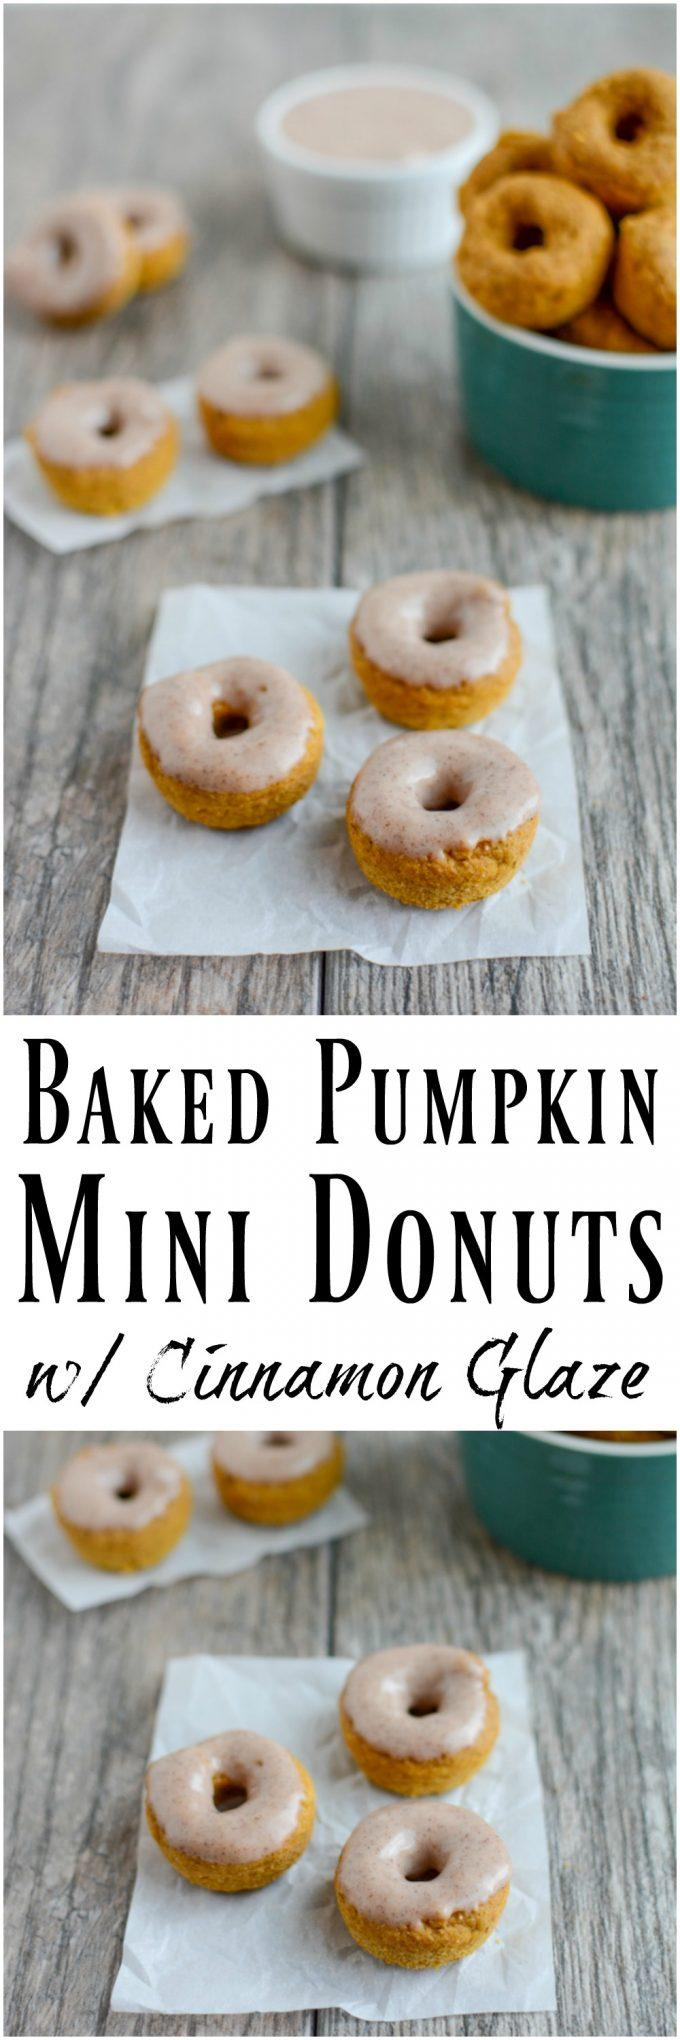 Make these Baked Pumpkin Donuts for a weekend breakfast treat or a fun dessert Enjoy them plain or with an easy cinnamon glaze.